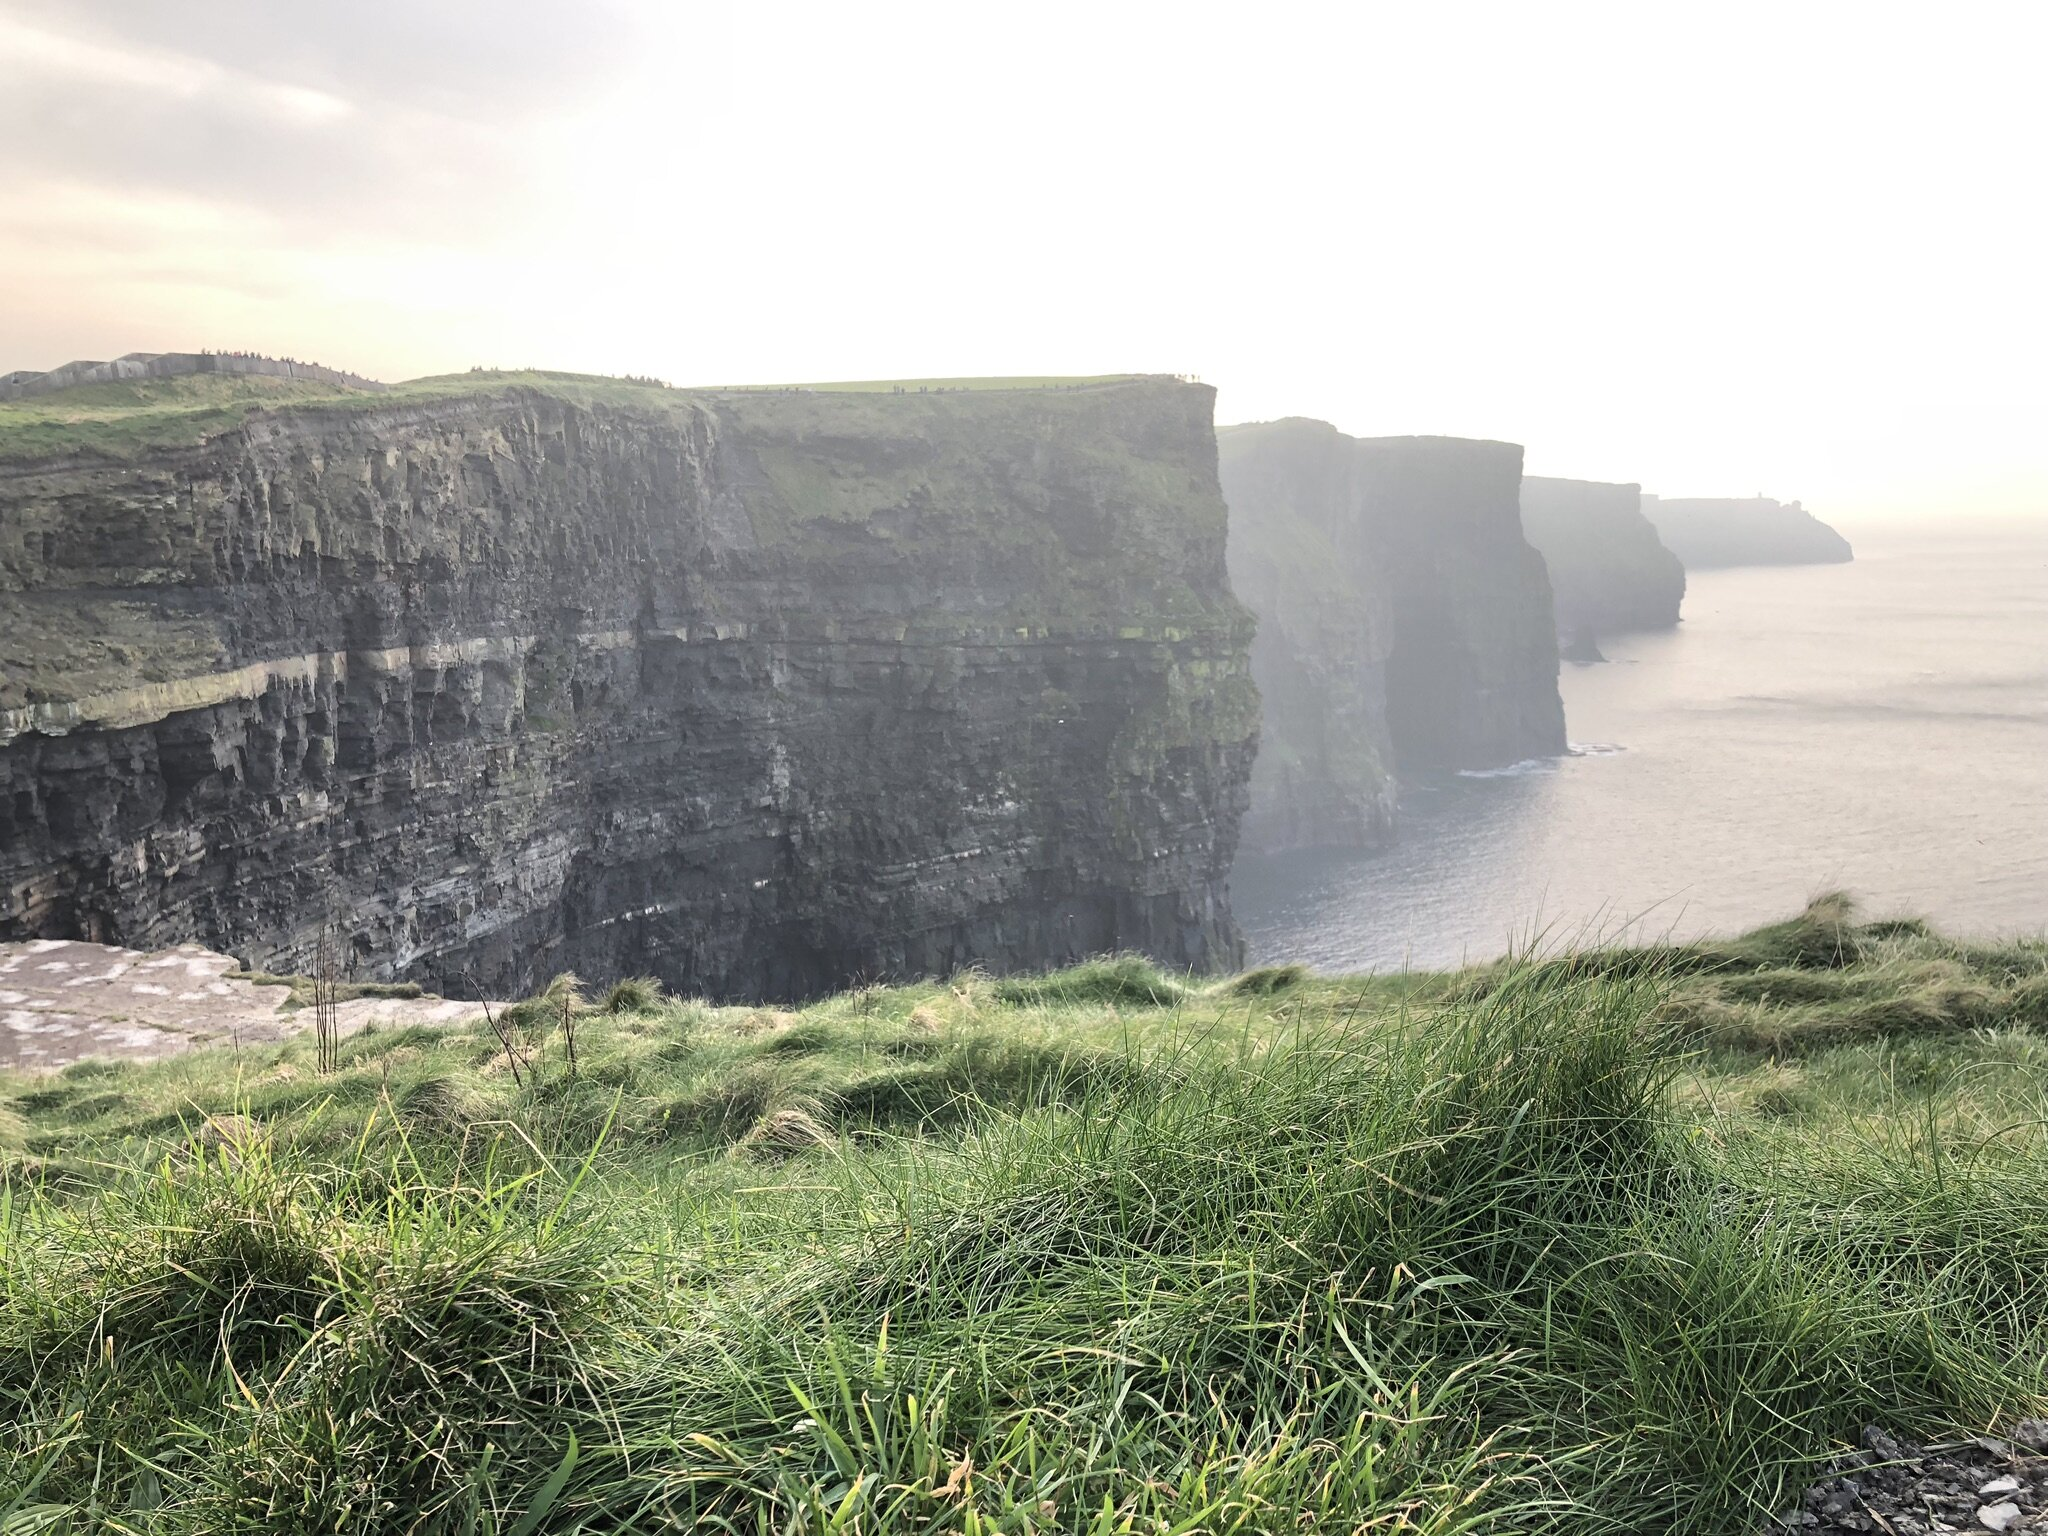 The gorgeous view at the Cliffs of Moher.